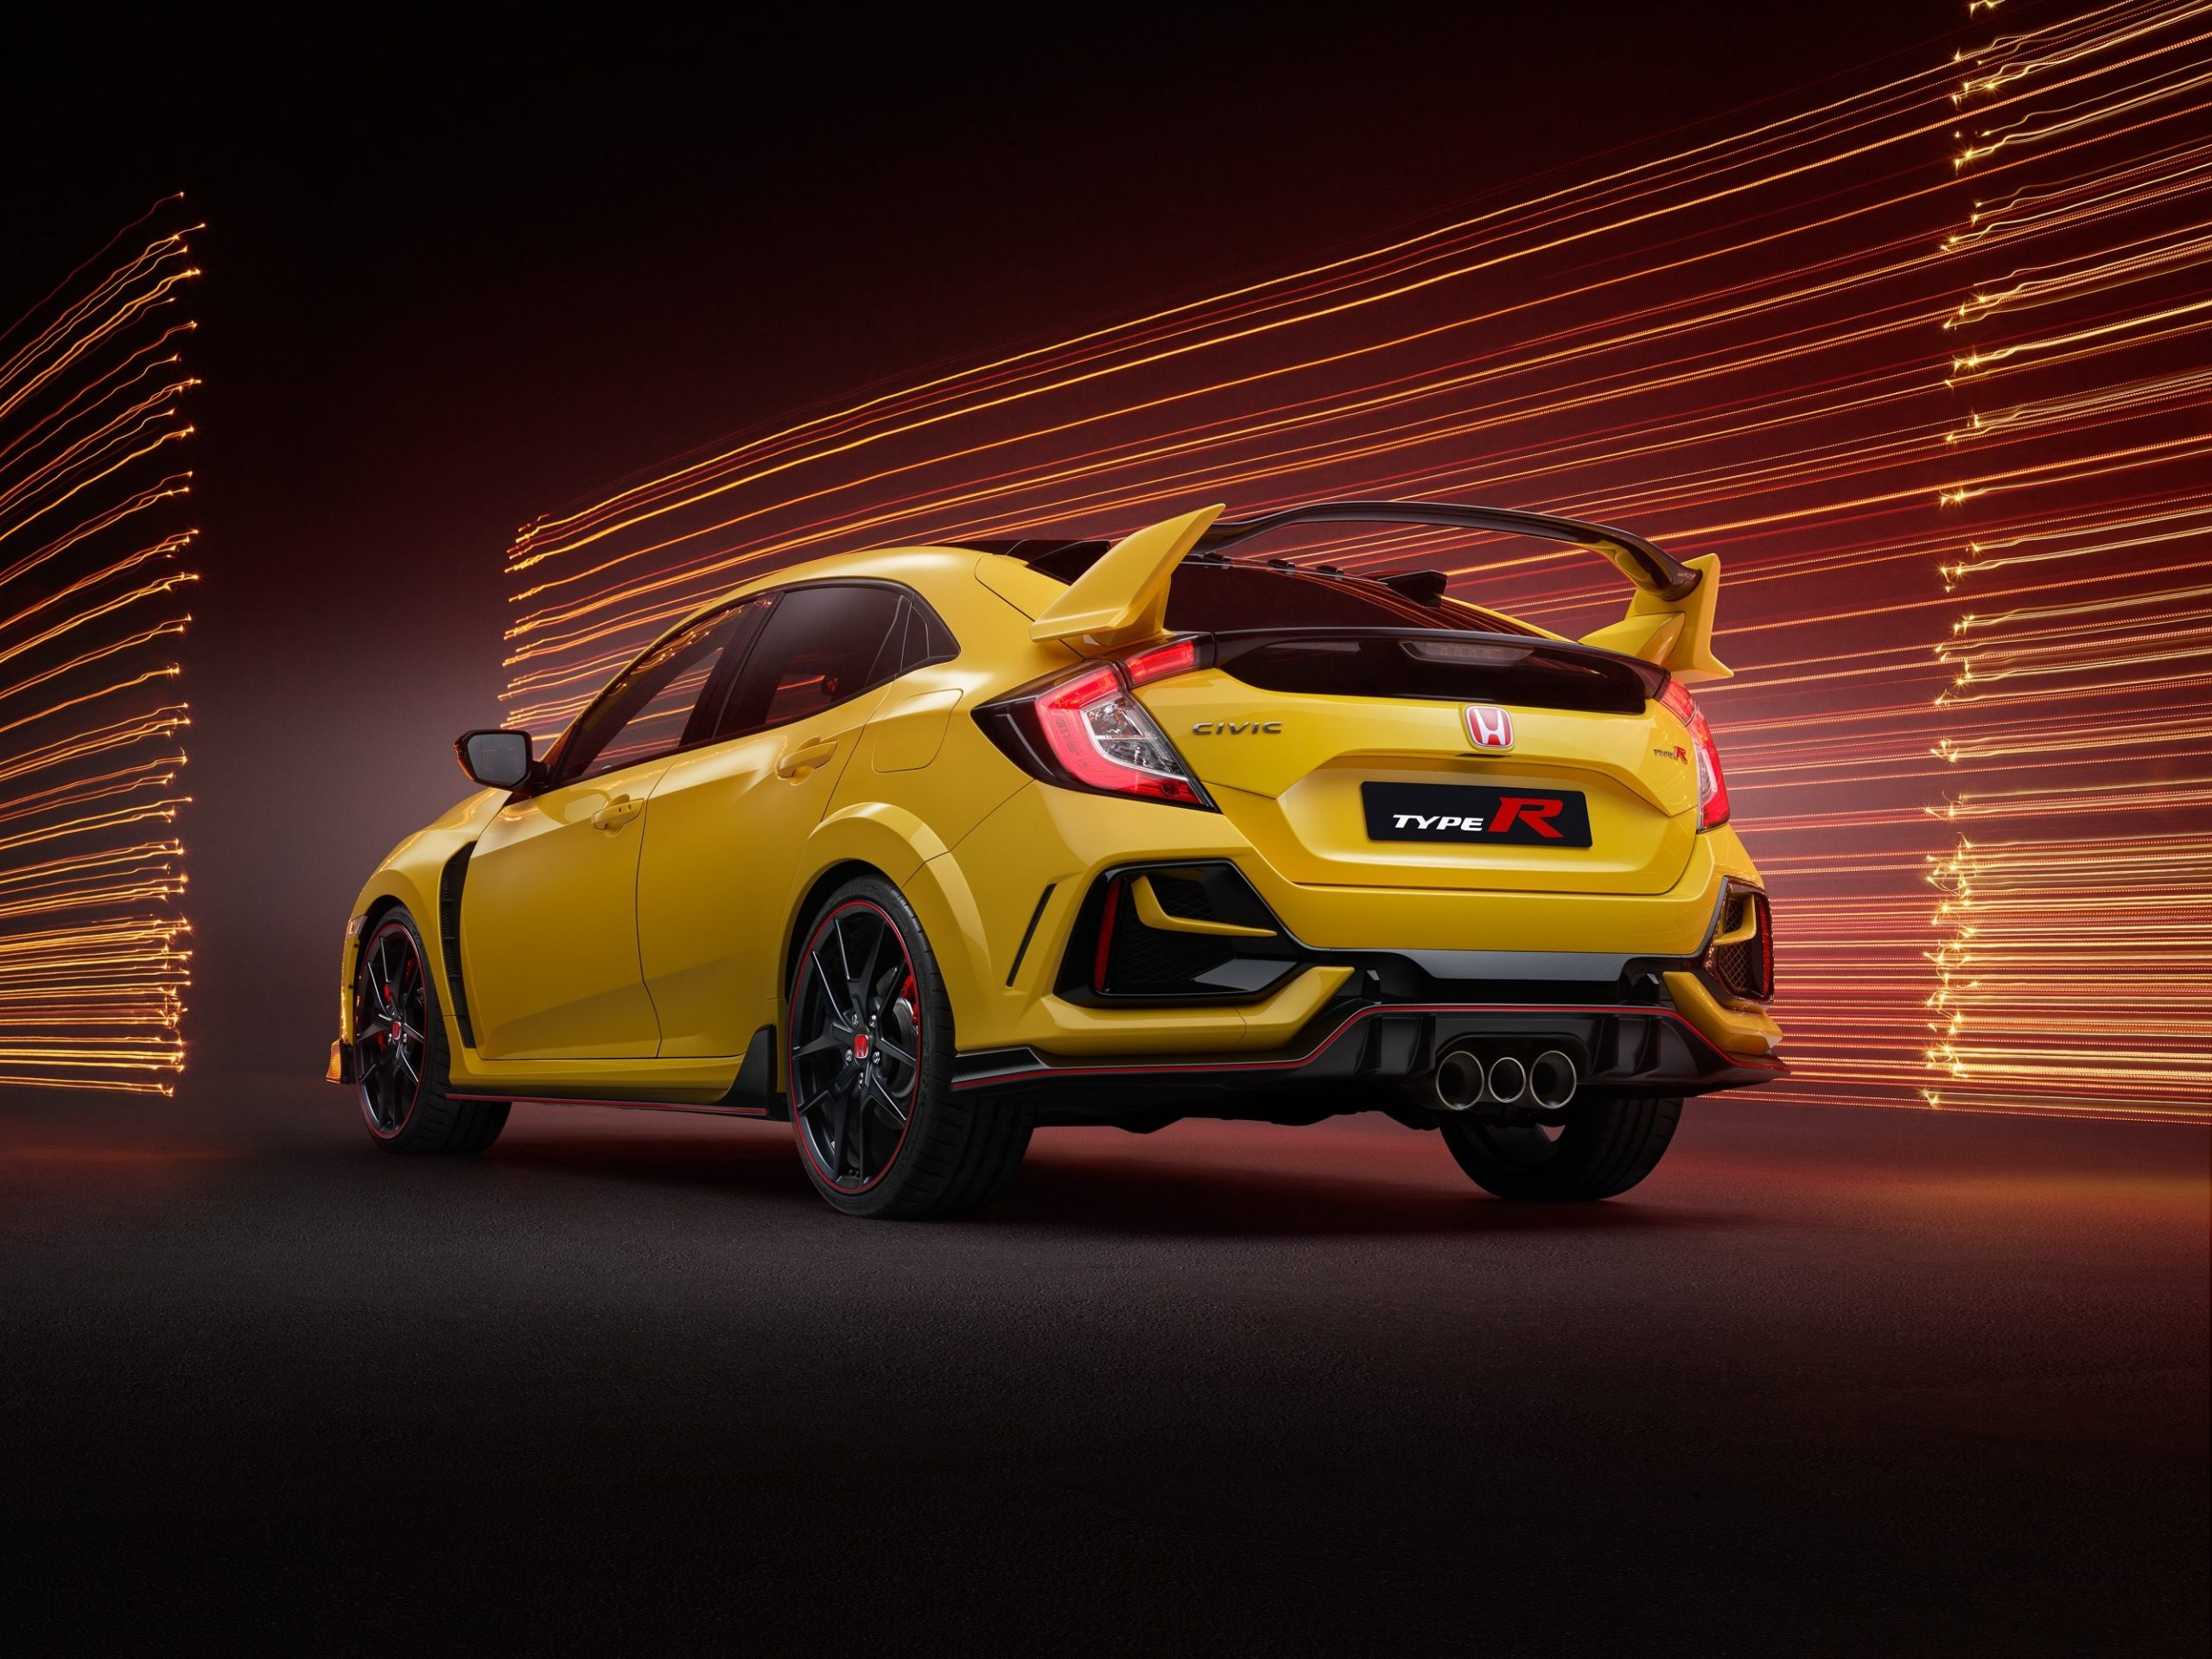 Civic Type R Limited Edition rear three quarter